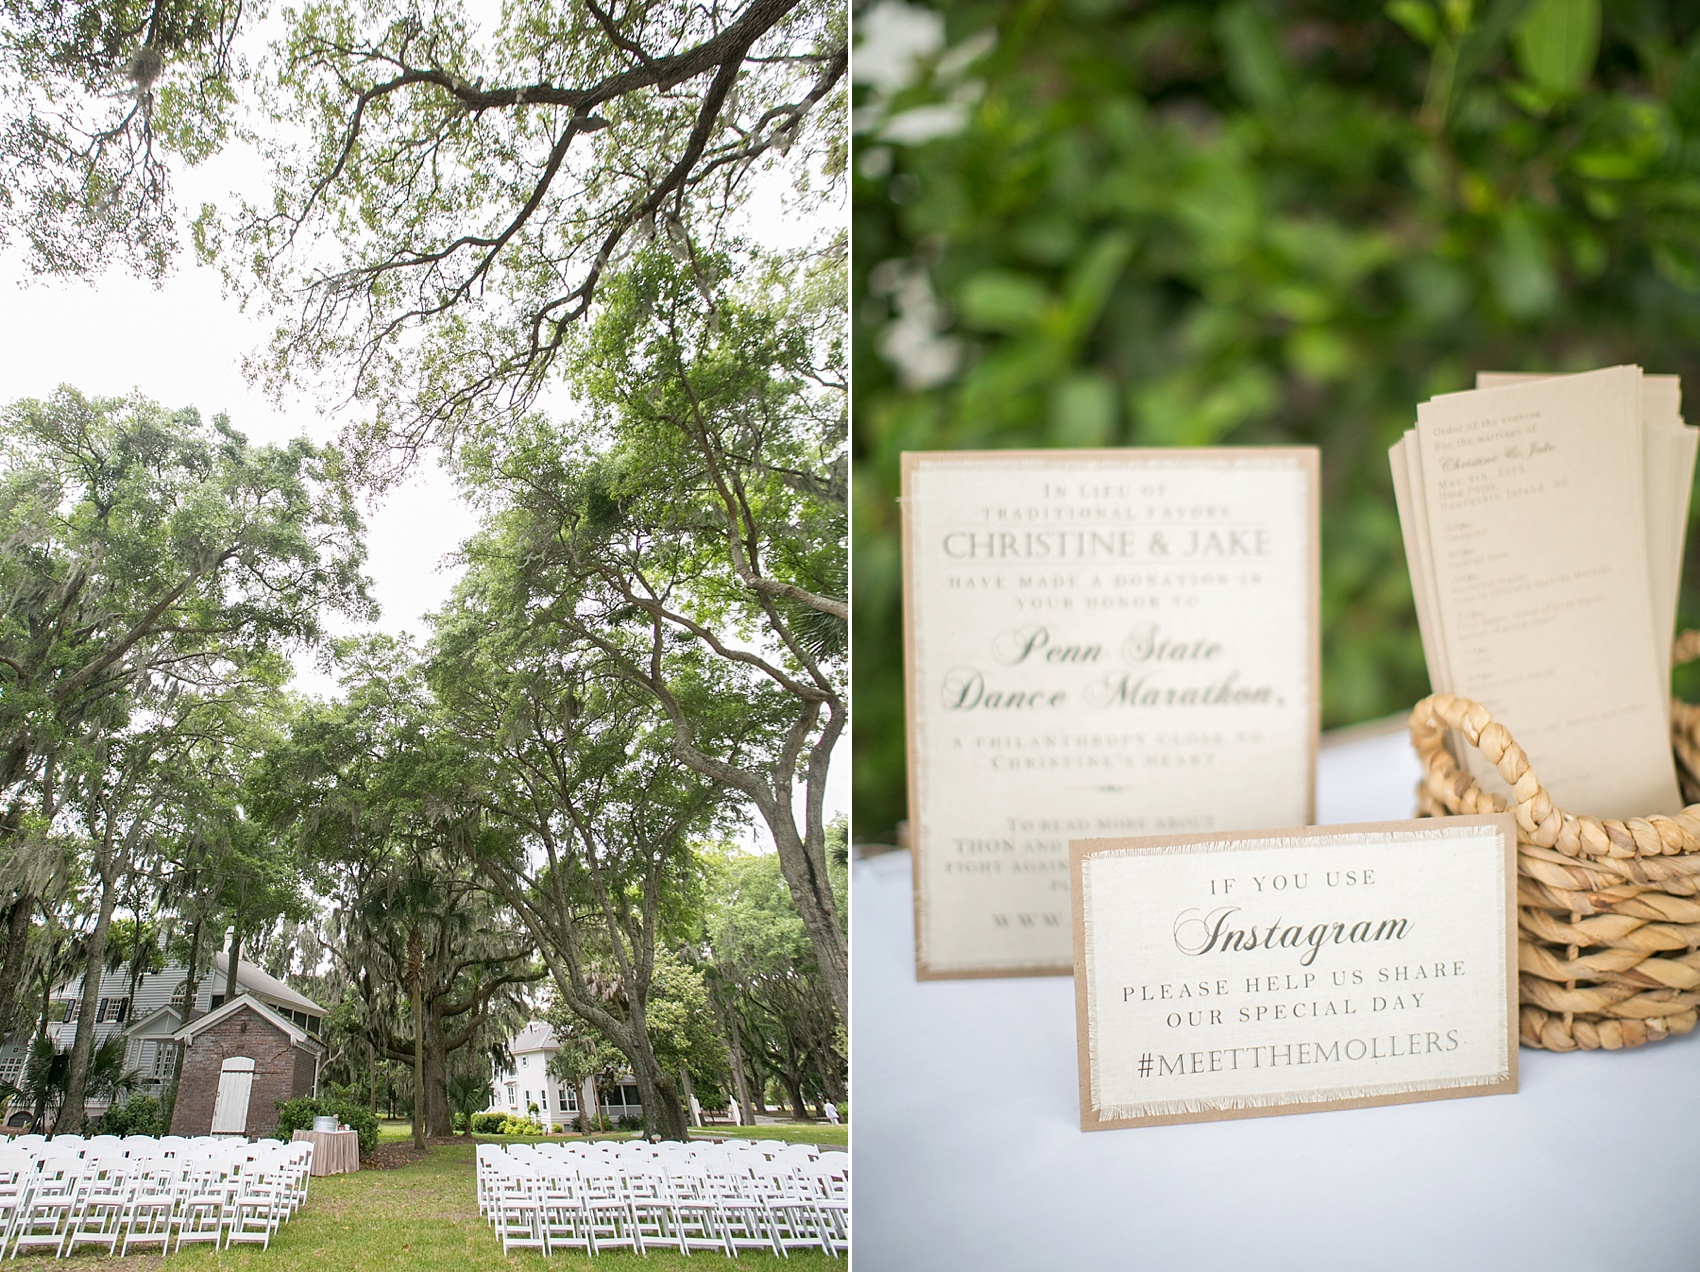 Wedding ceremony amidst Spanish Moss for a Haig Point wedding in South Carolina, off the coast of Hilton Head. Photos by Mikkel Paige Photography.